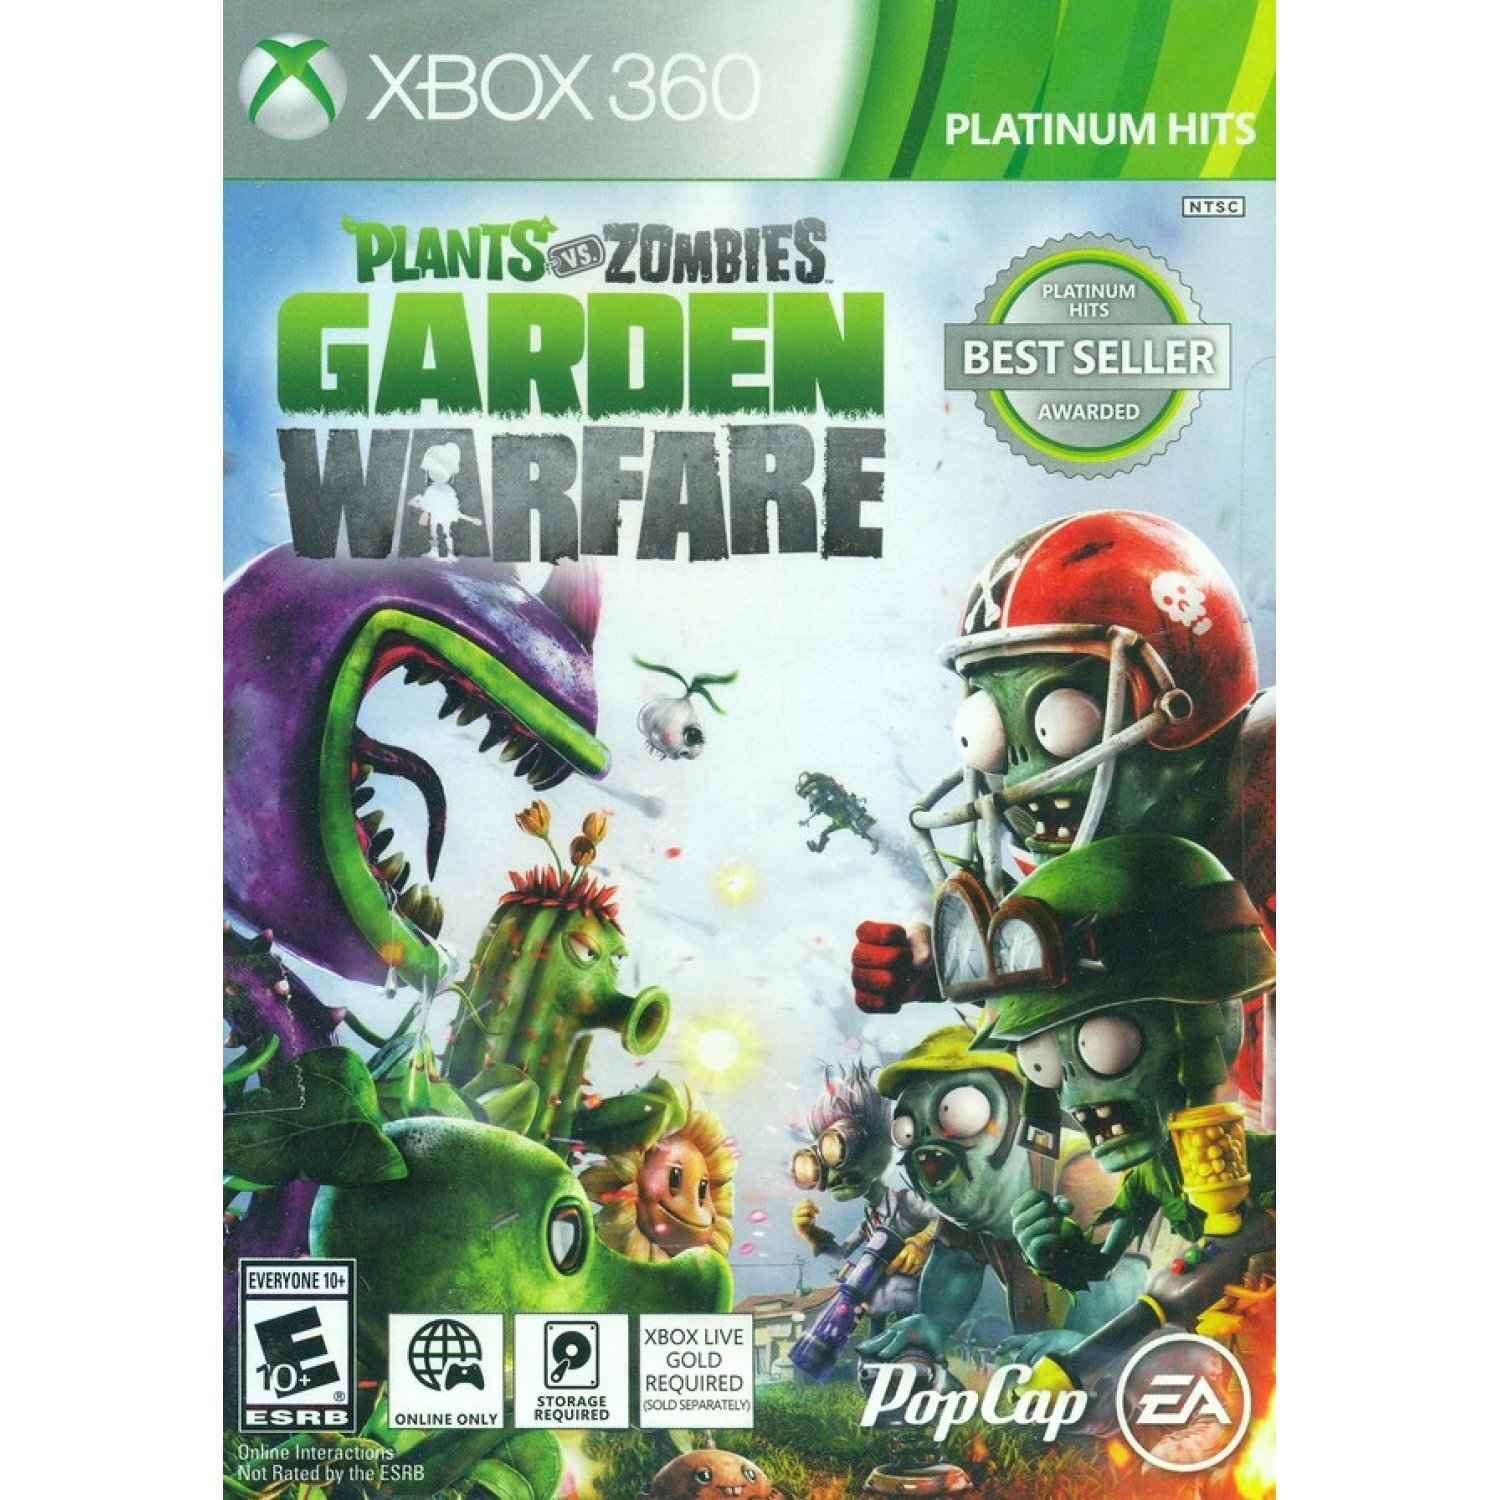 plants vs zombies garden warfare platinum hits - Plants Vs Zombies Garden Warfare Xbox 360